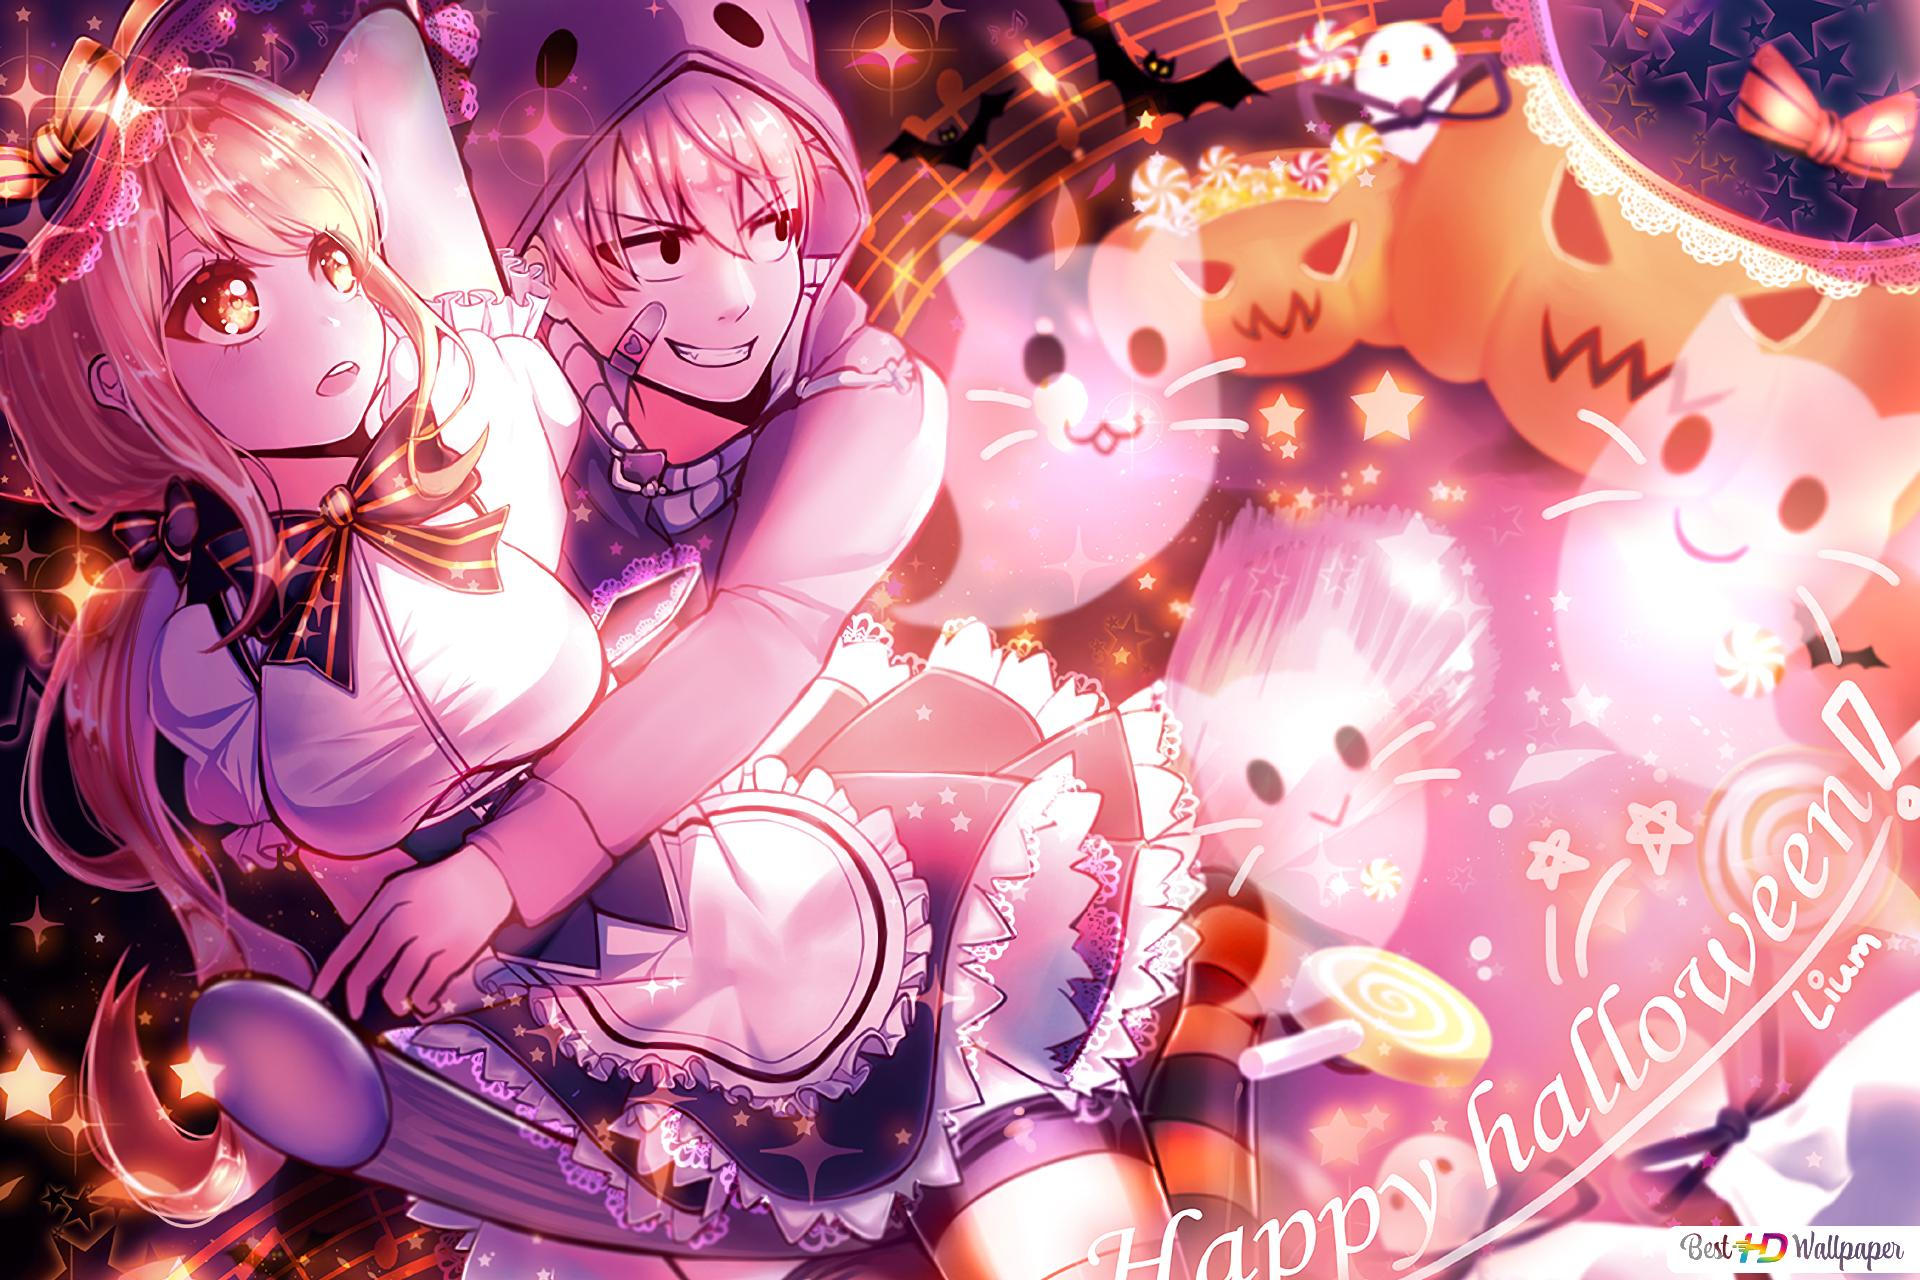 Lucy and Natsu HD wallpaper download